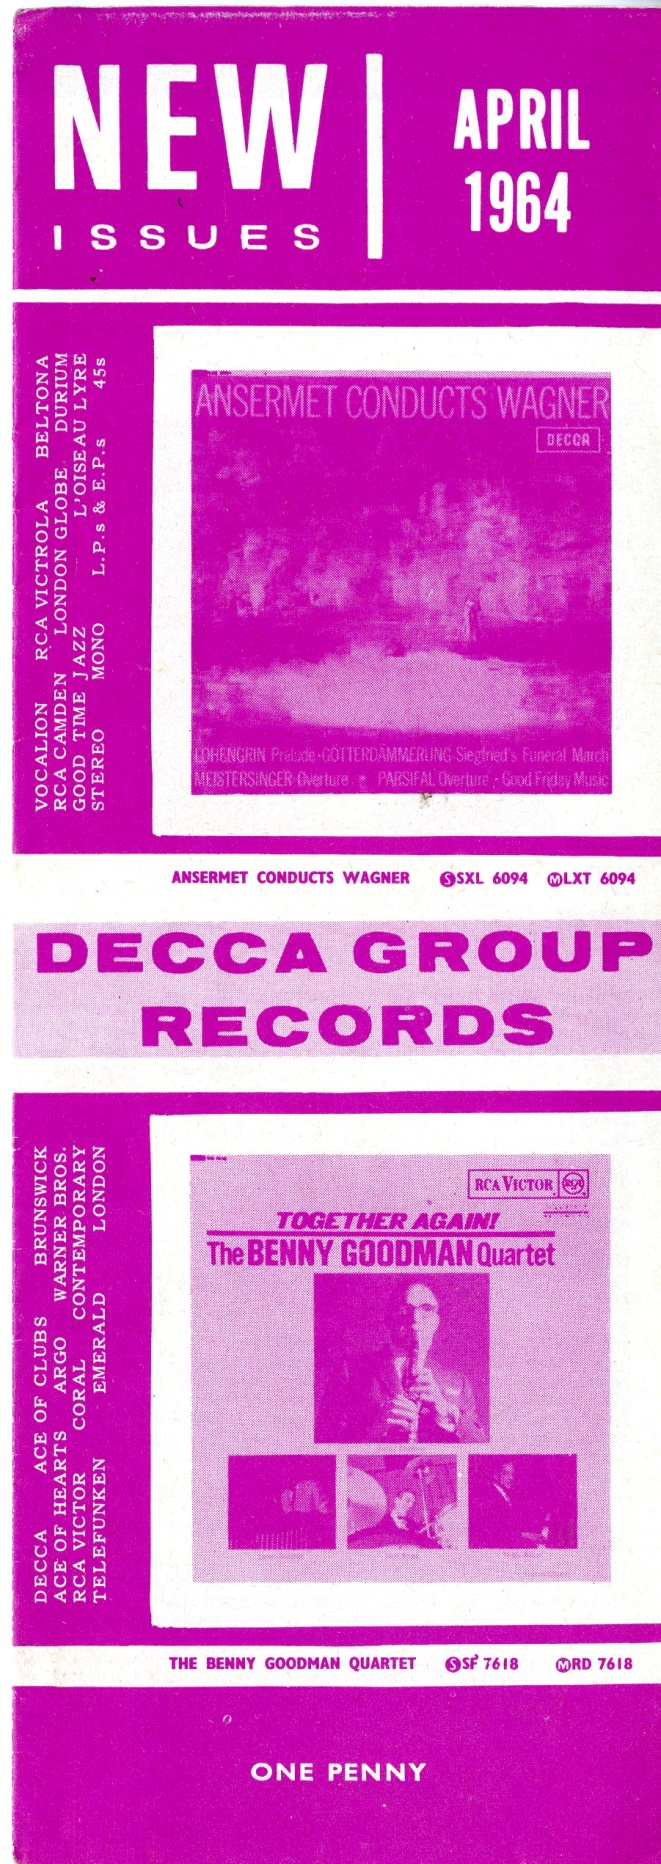 Cover of Decca Record Co. April 1964 catalogue listing the Doctor Who theme from the BBC Radiophonic Workshop